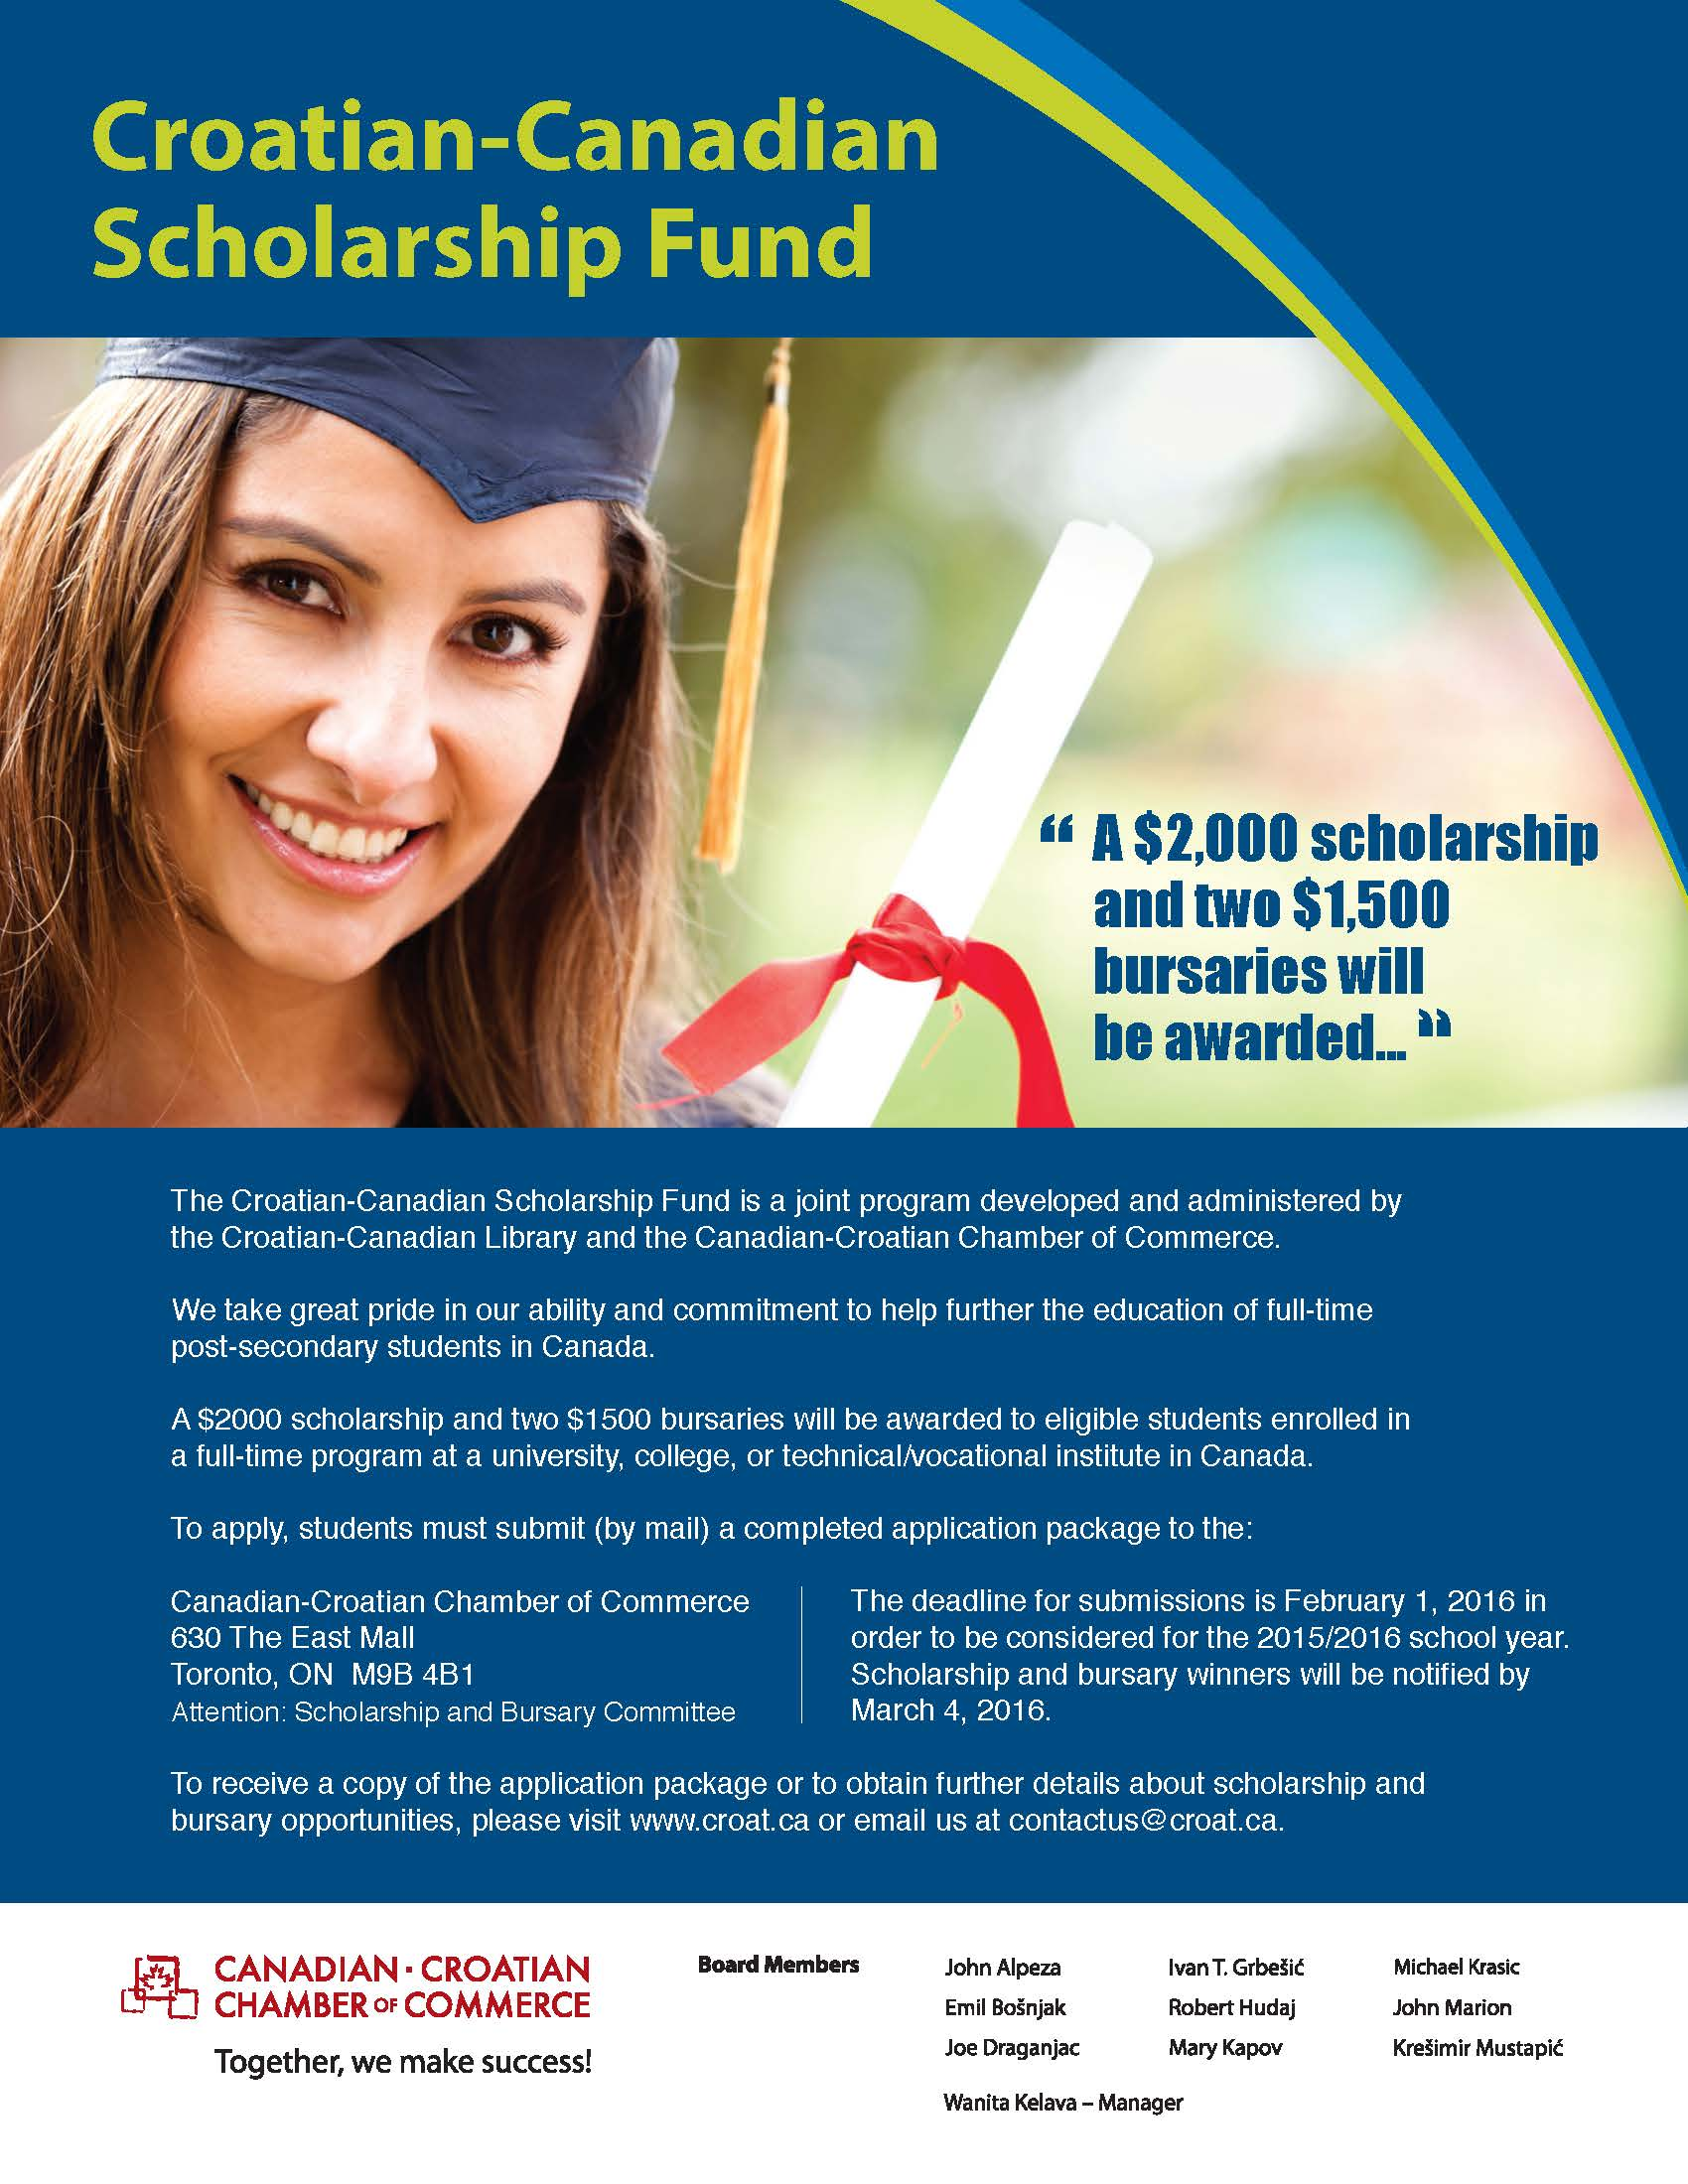 Scholarships For College Students 2016 >> Studying In Canada Croatian Canadian Scholarship Fund Is Accepting